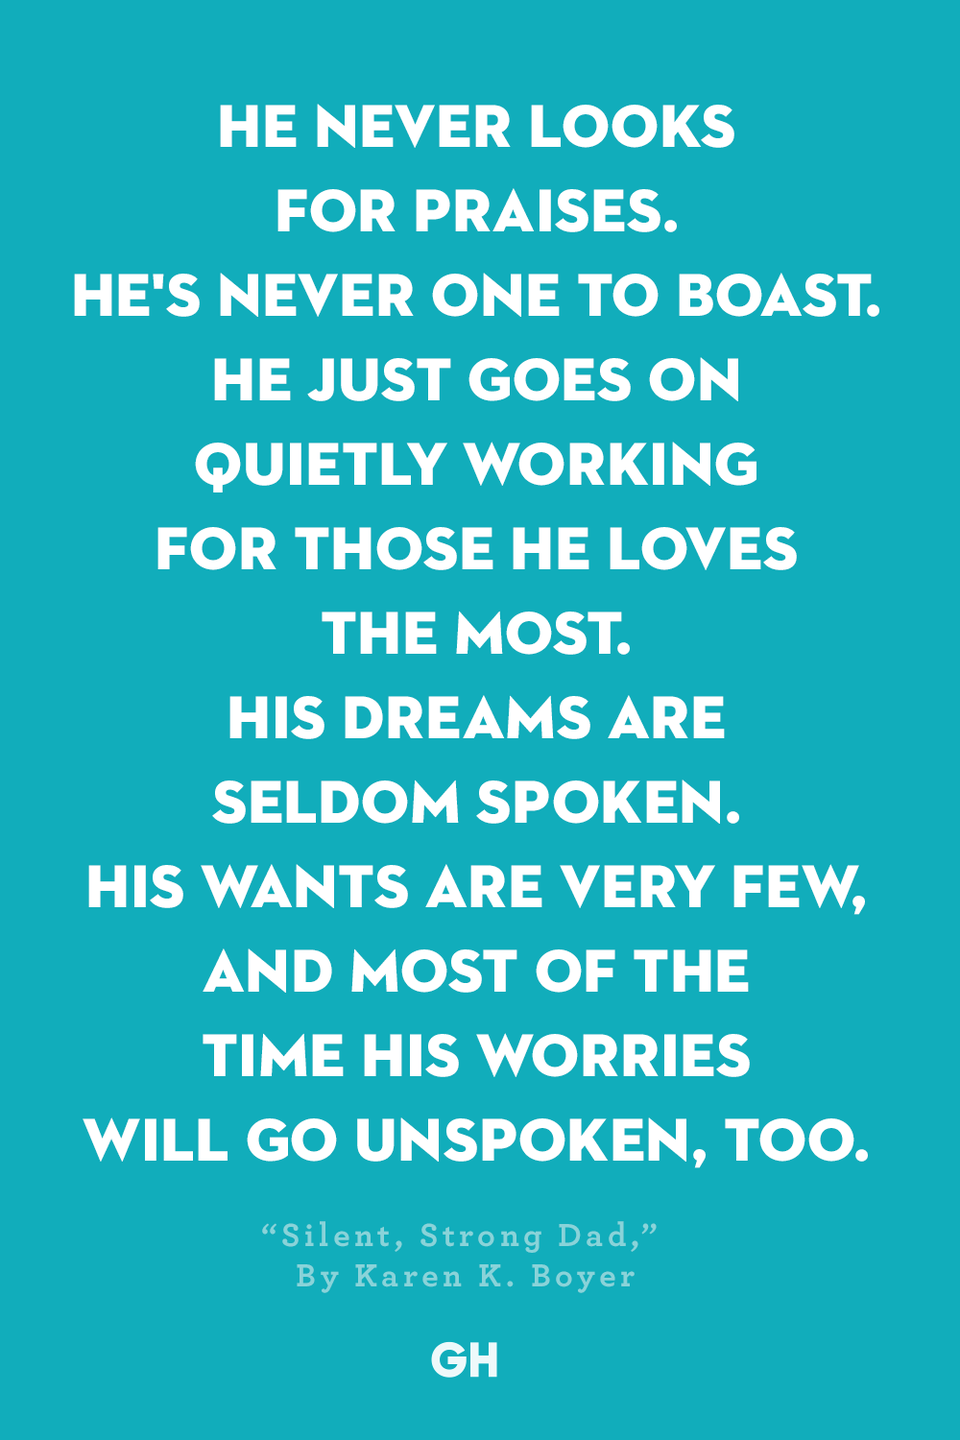 <p>He never looks for praises.</p><p>He's never one to boast.</p><p>He just goes on quietly working</p><p>For those he loves the most.</p><p>His dreams are seldom spoken.</p><p>His wants are very few,</p><p>And most of the time his worries</p><p>Will go unspoken, too.</p><p>He's there… a firm foundation</p><p>Through all our storms of life,</p><p>A sturdy hand to hold onto</p><p>In times of stress and strife.</p><p>A true friend we can turn to</p><p>When times are good or bad.</p><p>One of our greatest blessings,</p><p>The man that we call Dad.</p>